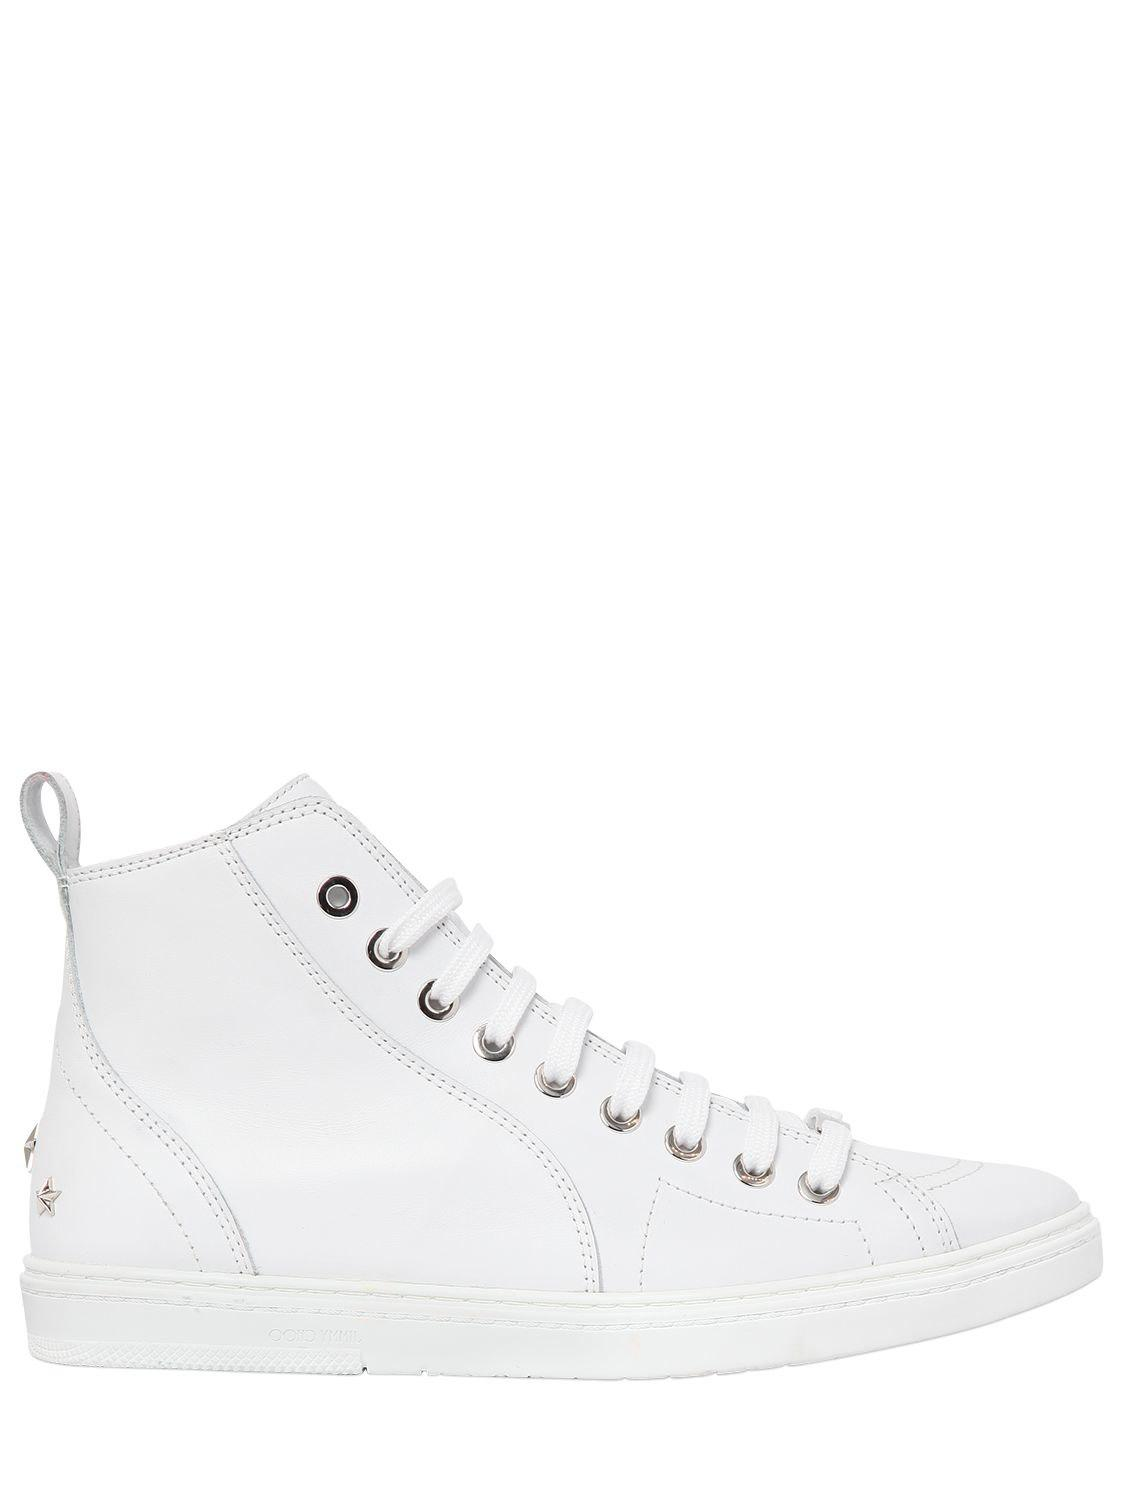 Jimmy chooSMOOTH LEATHER LOW TOP SNEAKERS XYwYEvuZ